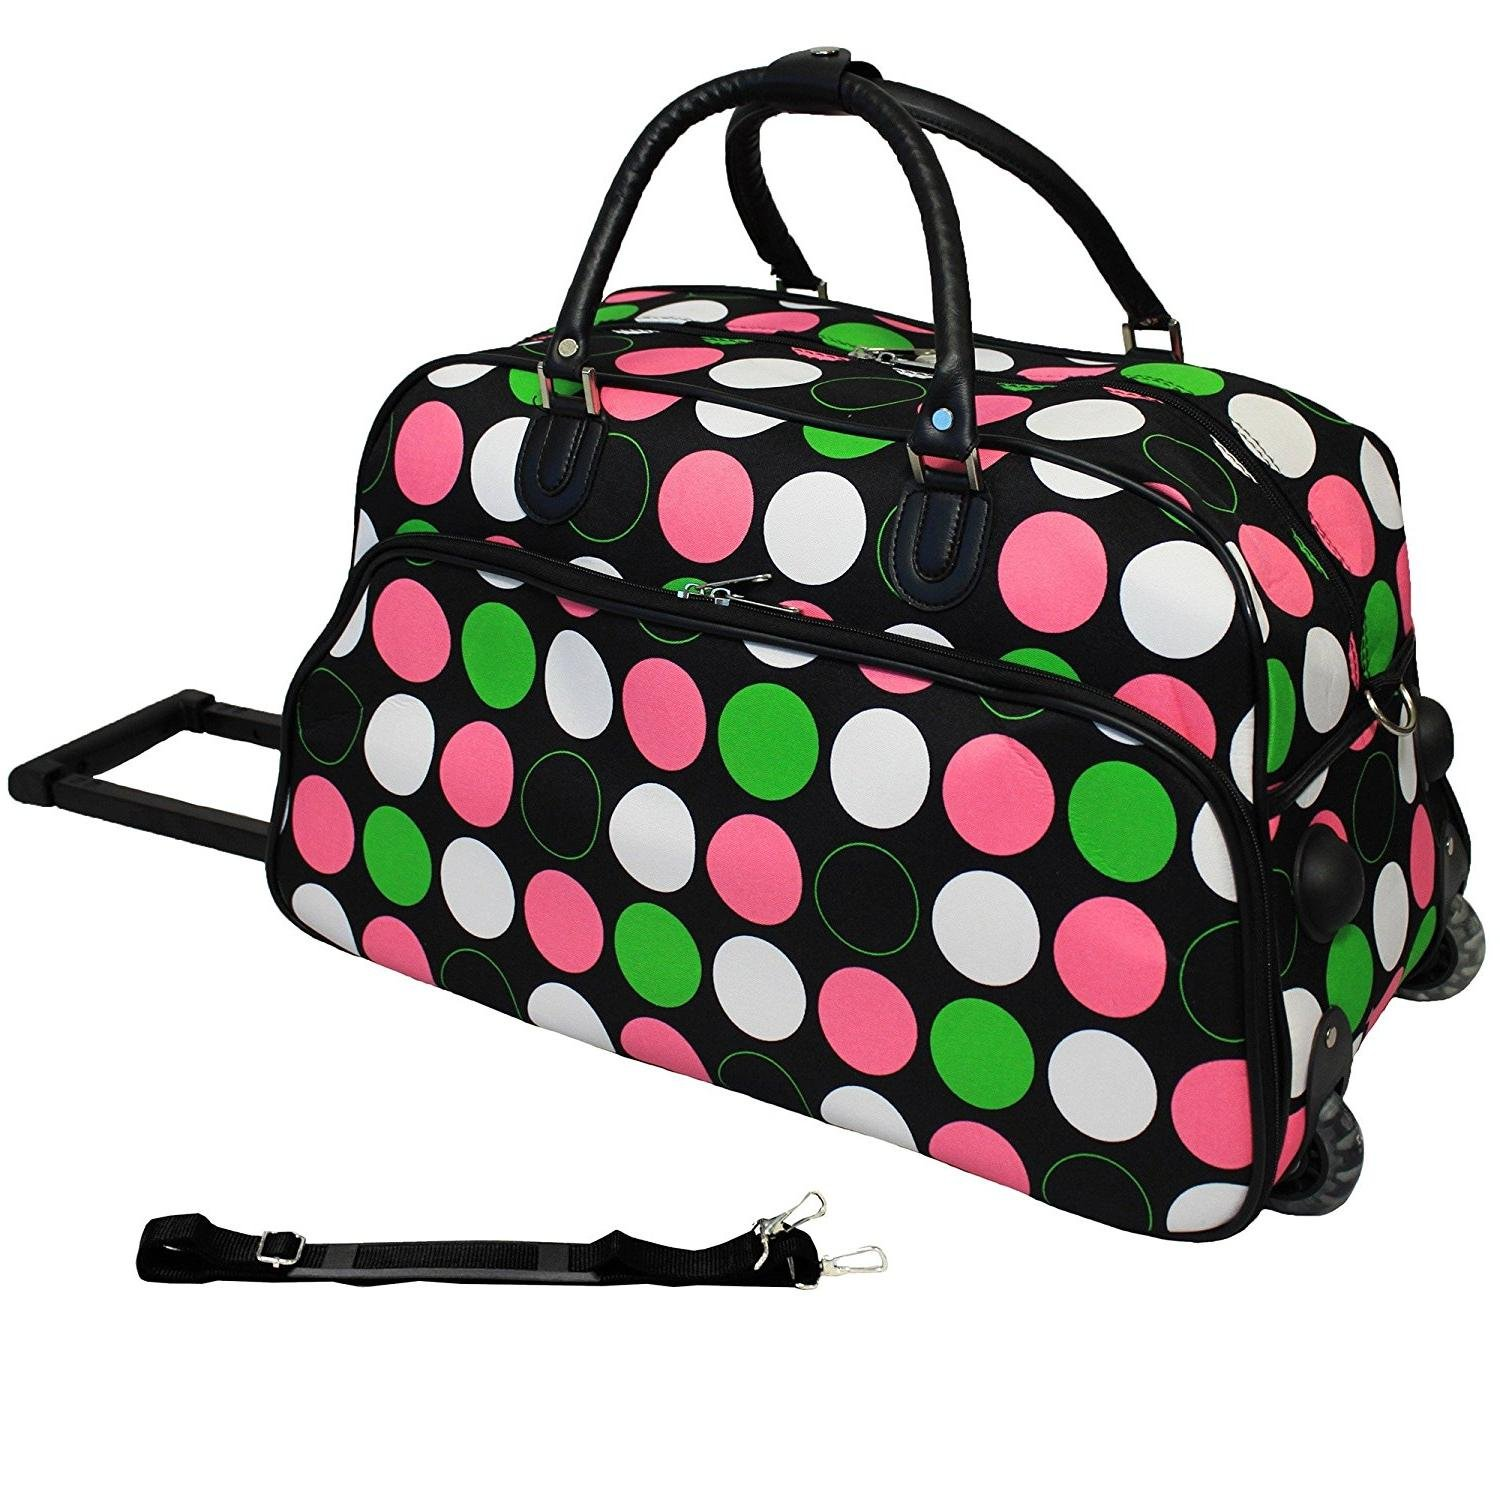 9f145d93306b Girls Pink Green Polka Dots Pattern Wheeled Duffle Bag Upright Rolling  Duffle